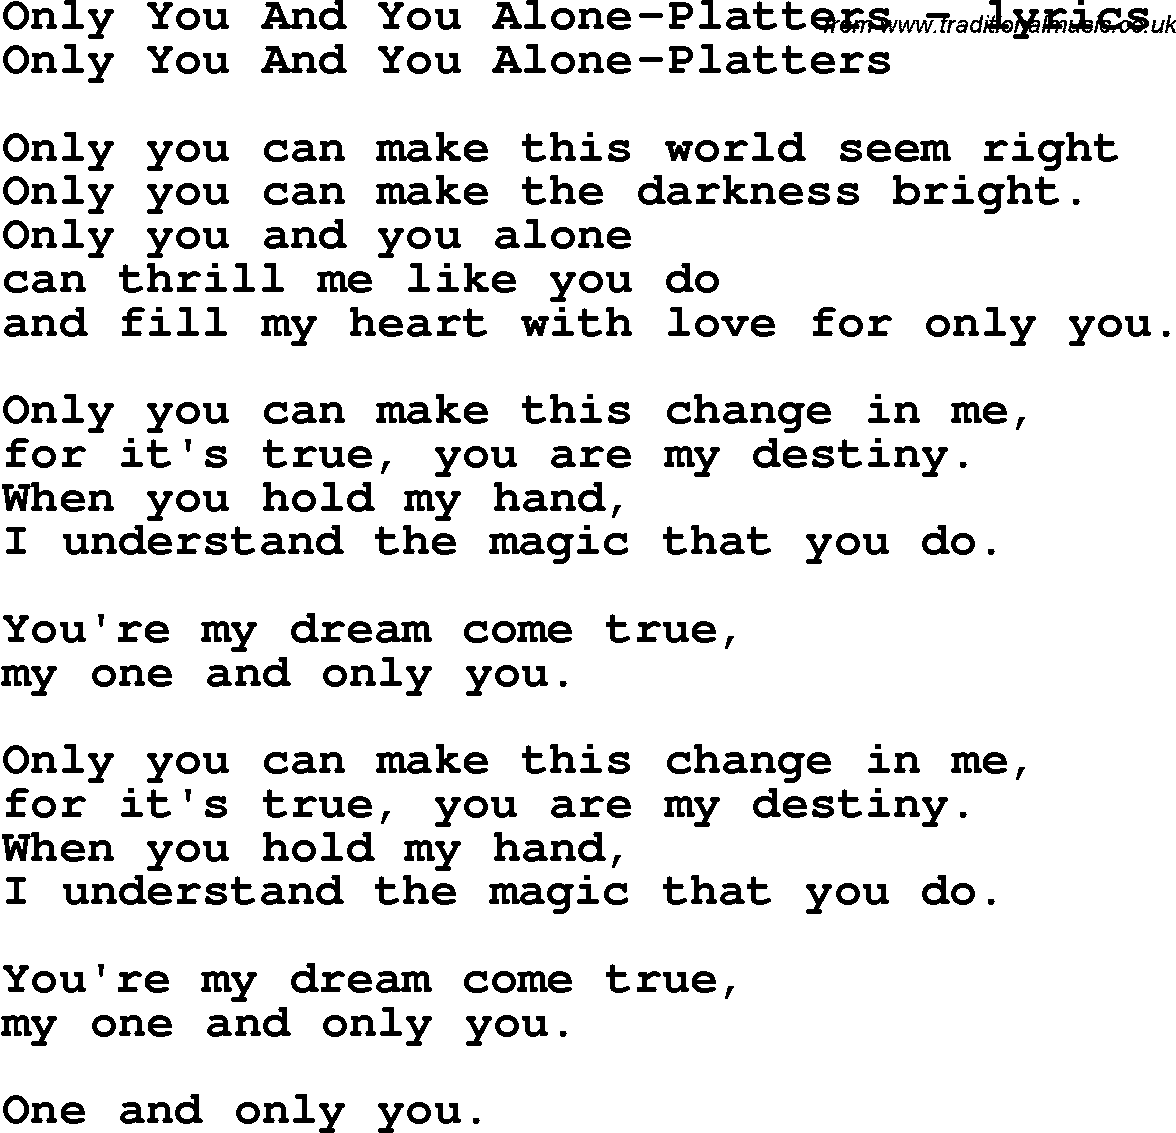 Love Song Lyrics for:Only You And You Alone-